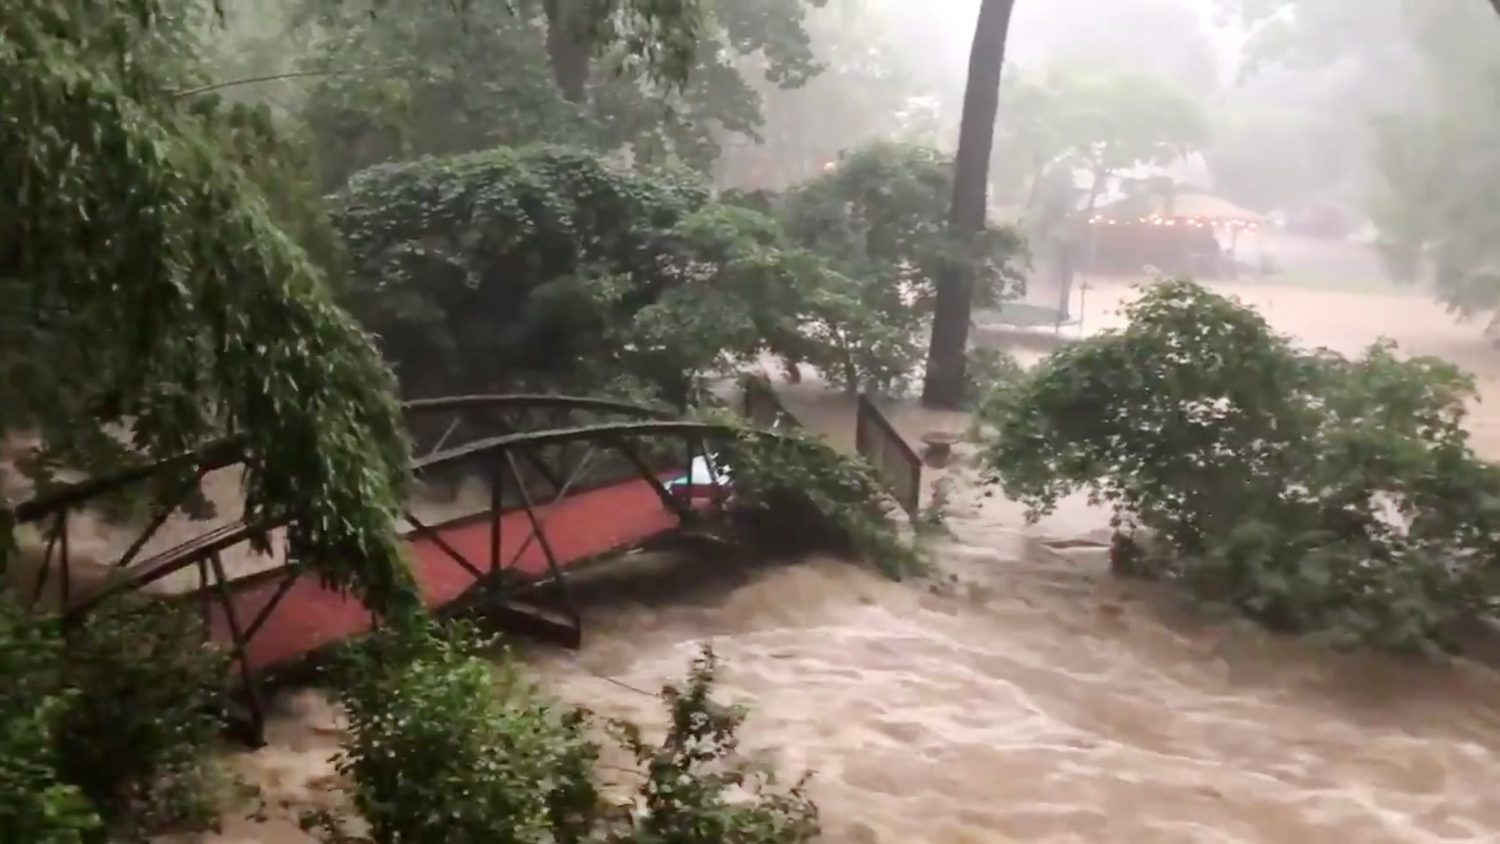 Flood waters are pictured in North Arlington, Virginia, U.S., July 8, 2019 in this picture grab obtained from social media video. Twitter/Hope Hodge Seck/@hopeseck/via REUTERS